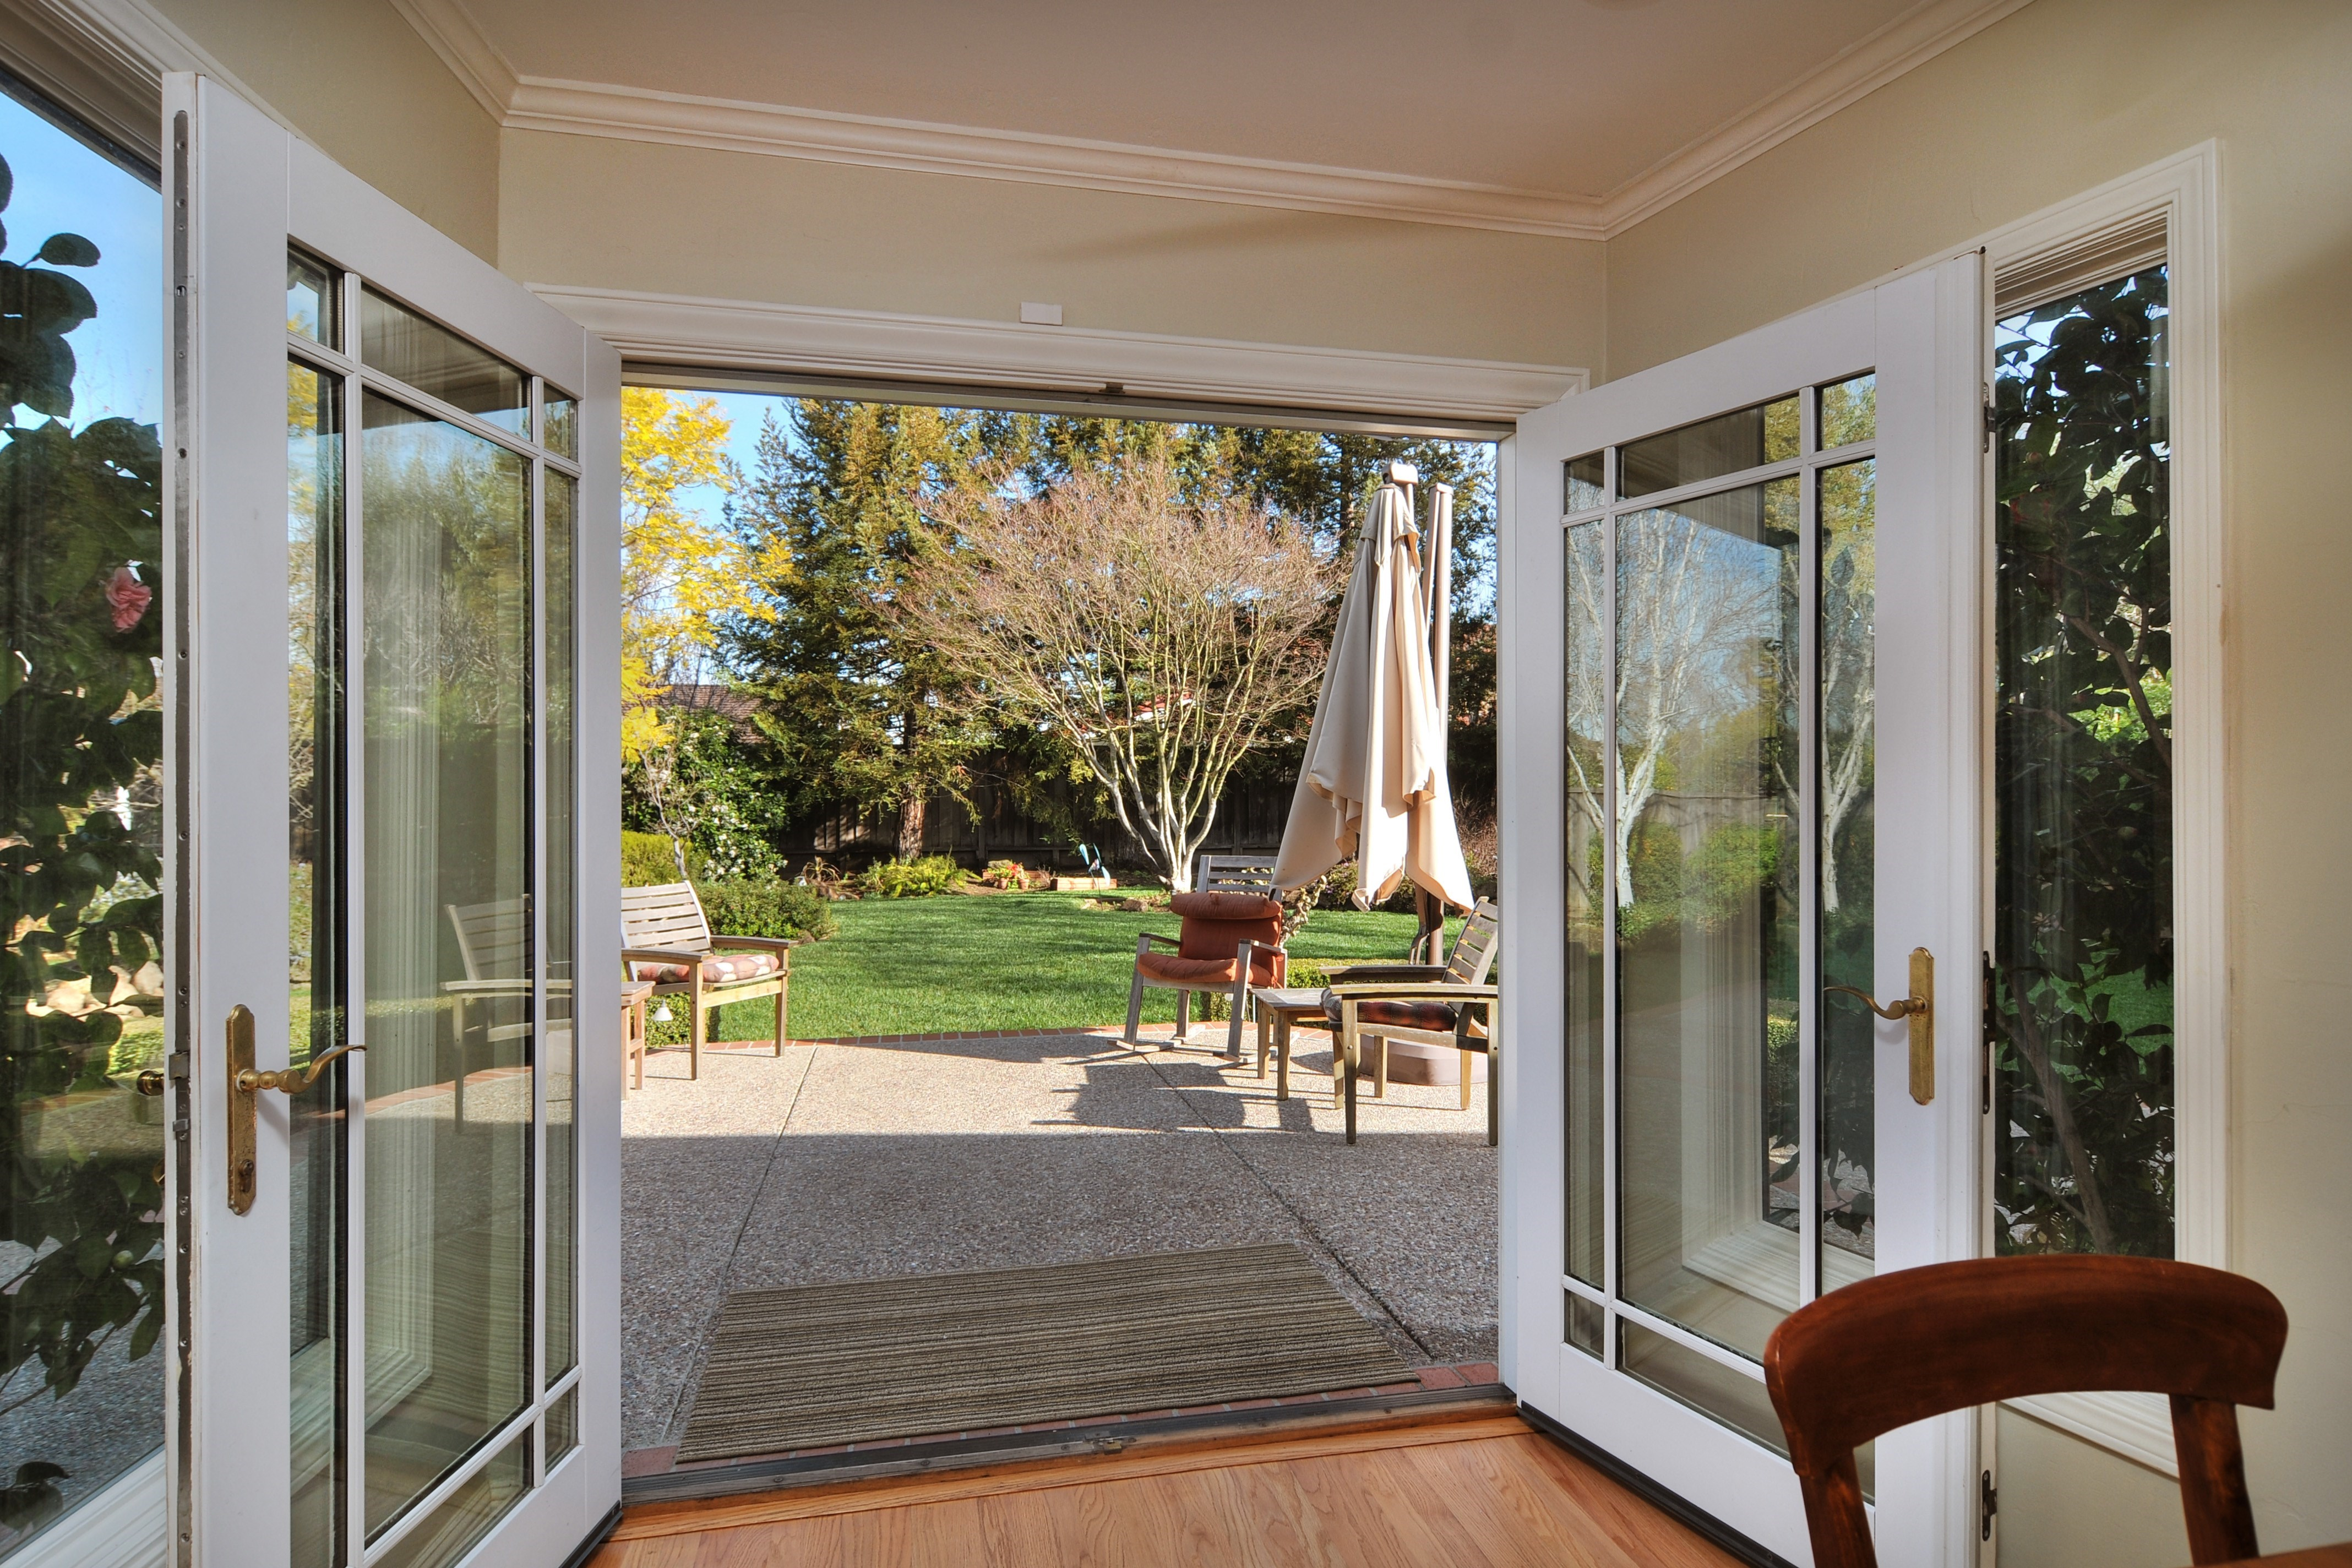 025 Kitchen View - Exquisite, expansive, remodeled Belwood home - 127 Belhaven Drive, Los Gatos